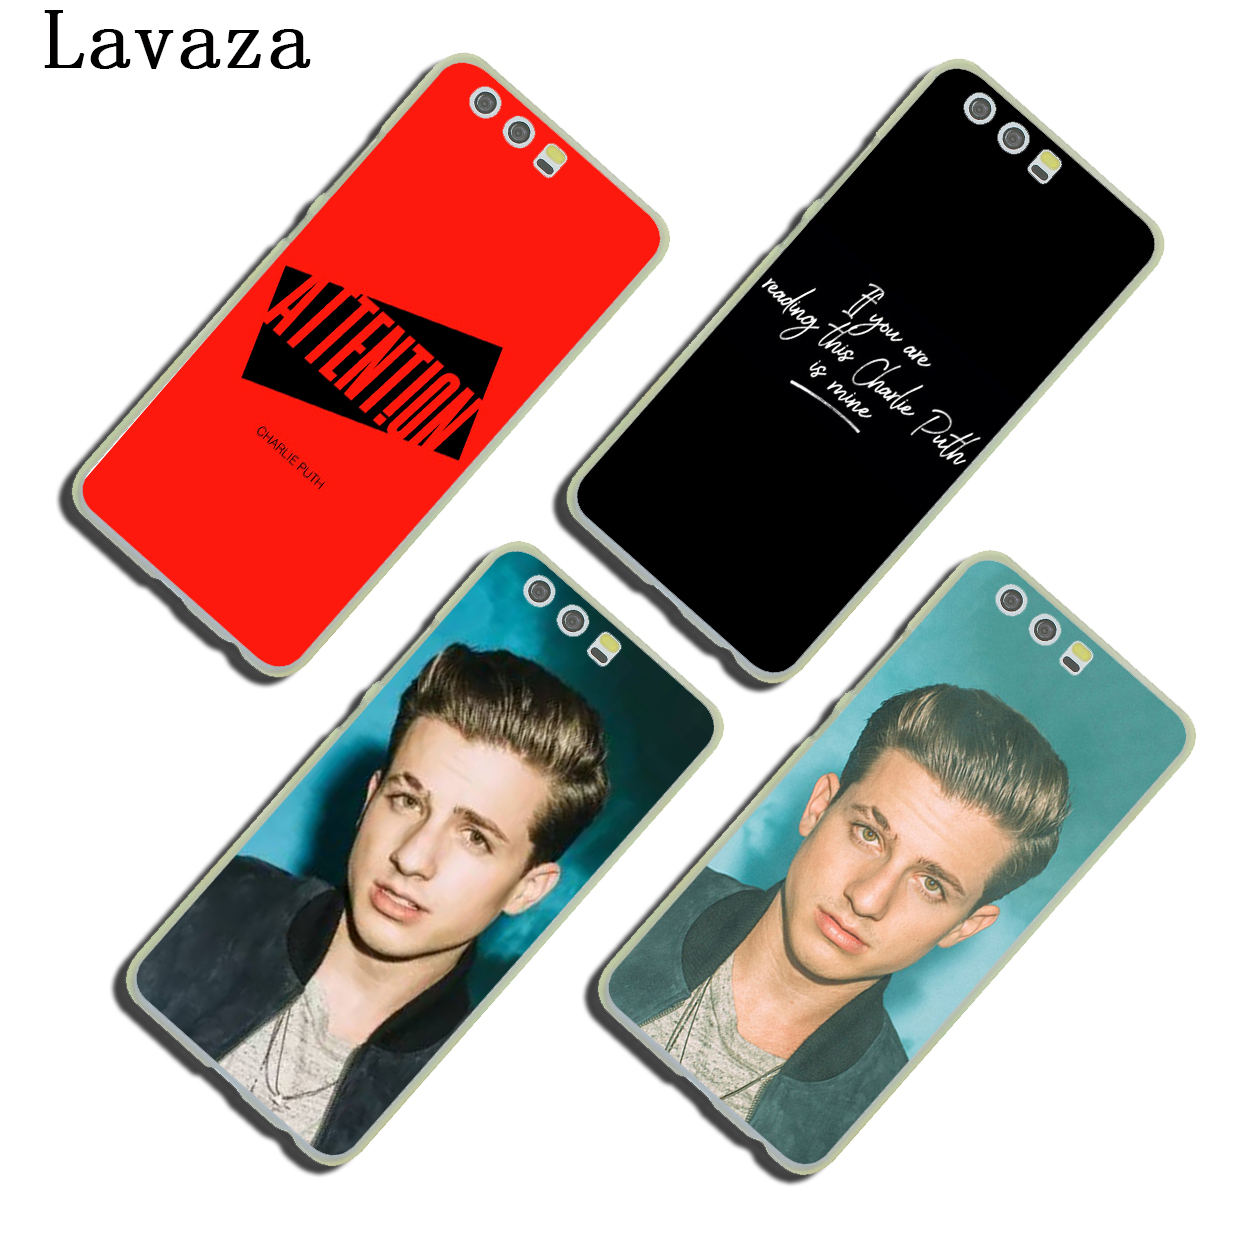 US $2 55 |Lavaza charlie puth attention Collage Cover Case for Huawei P20  P9 P10 Plus P8 Mate 20 Pro 10 Lite Mini 2016 2017 P smart 2019-in